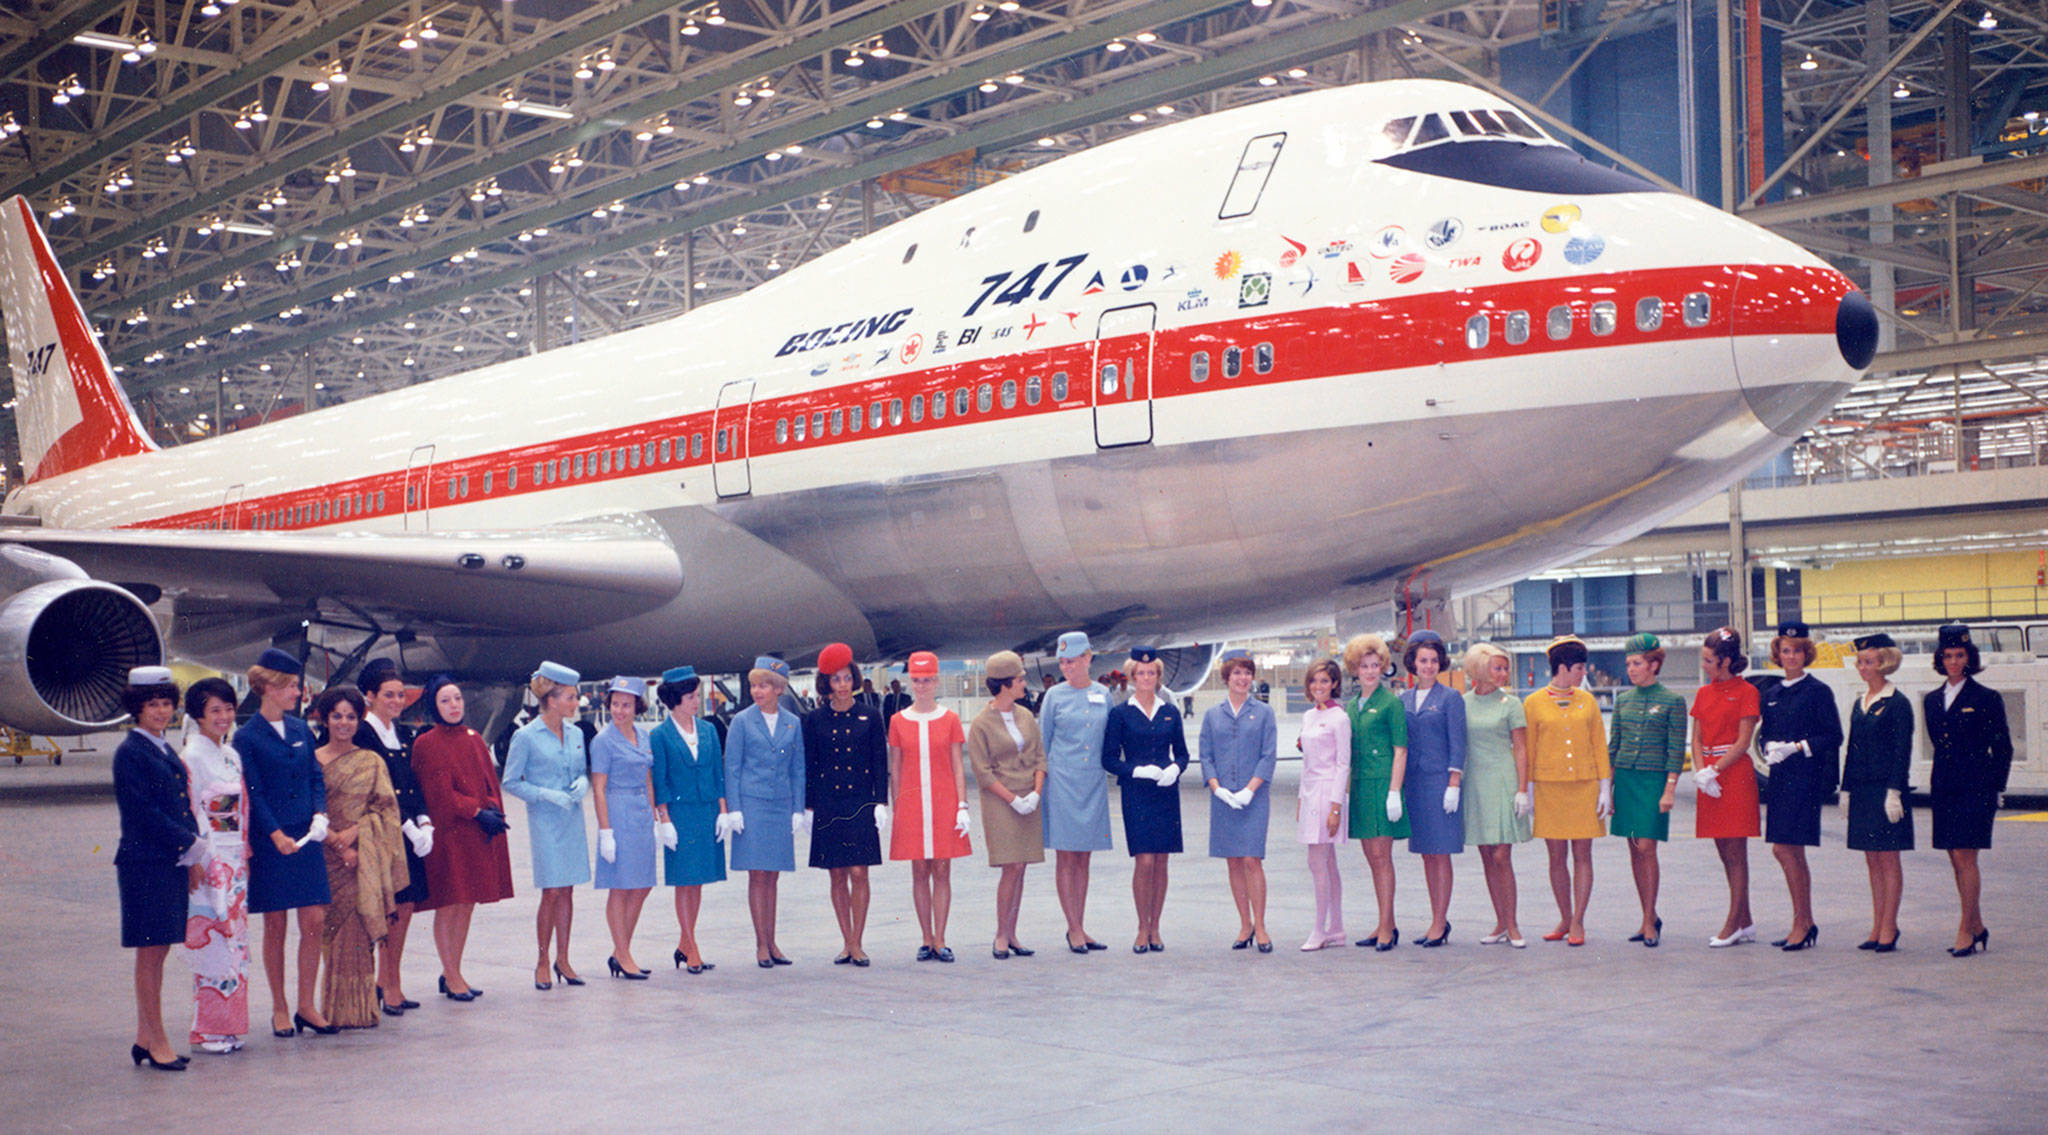 50 years ago, they rolled it out: the first Boeing 747